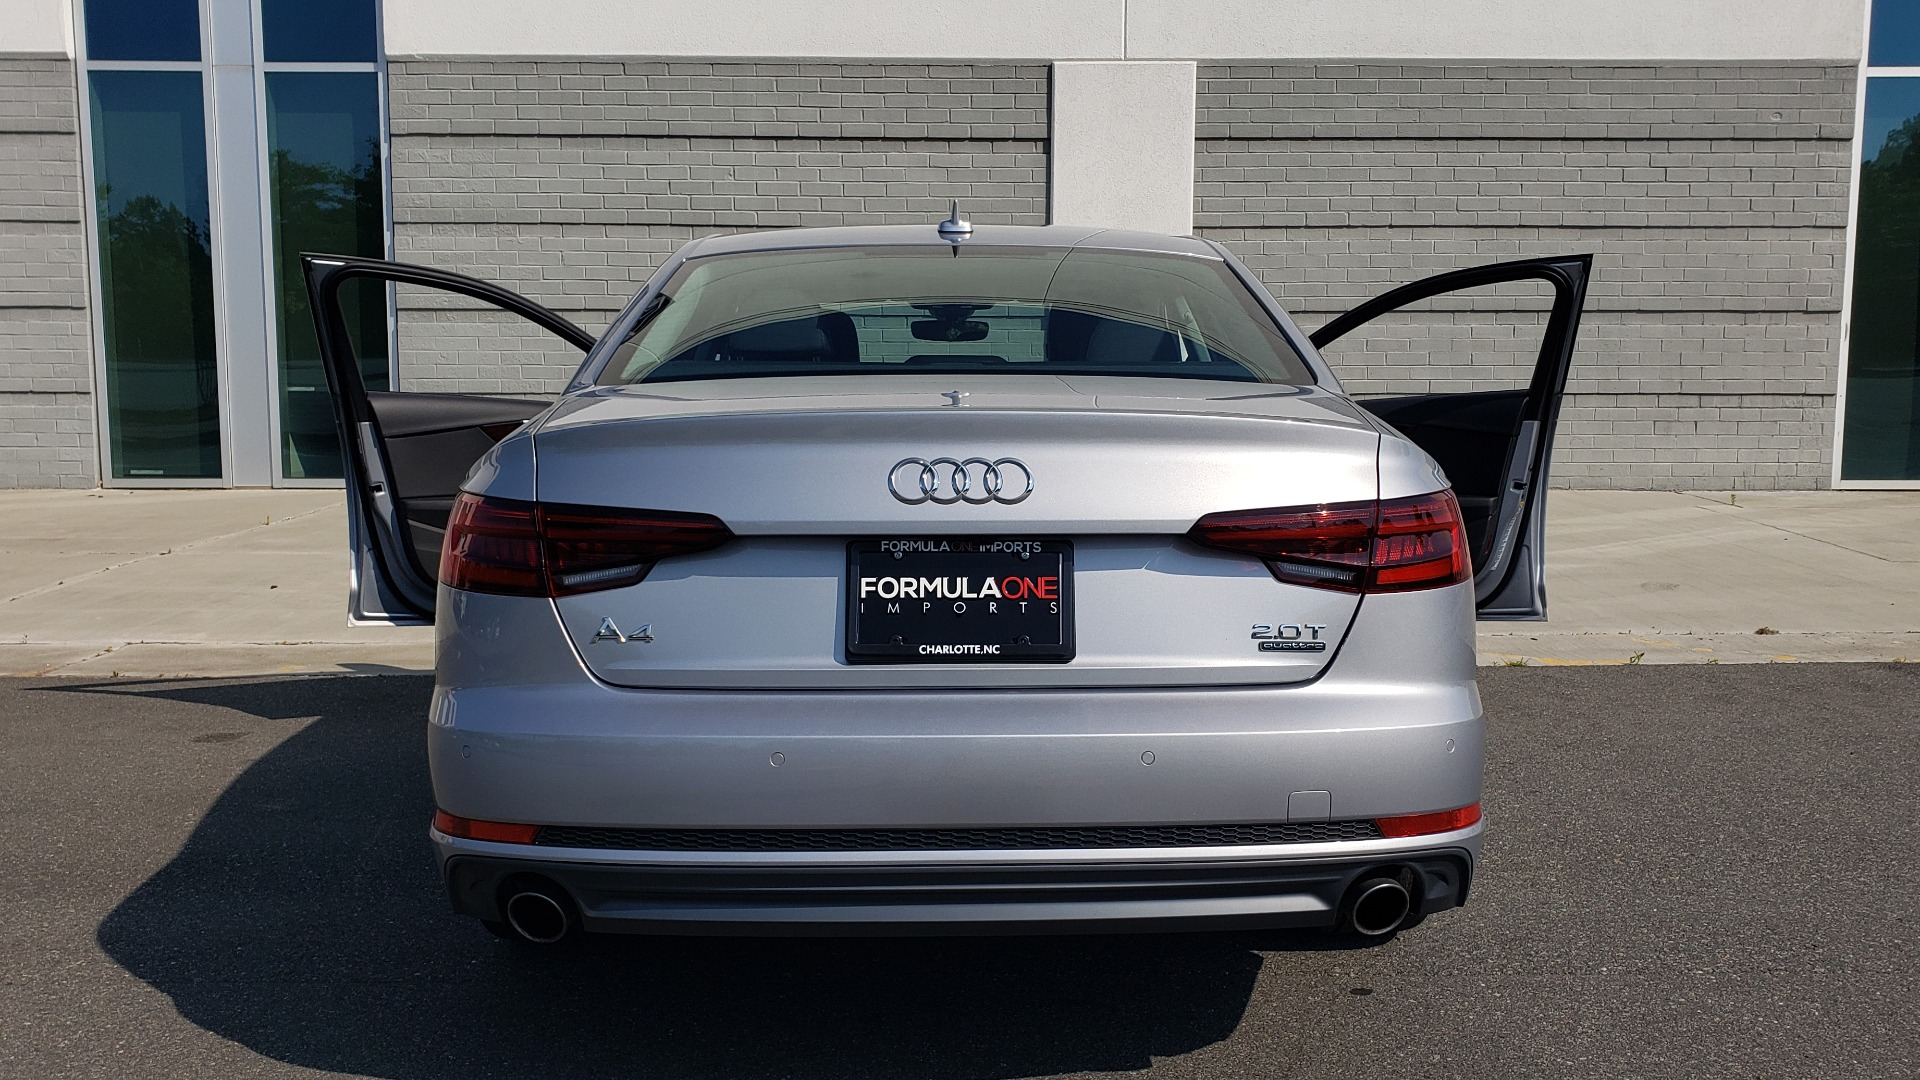 Used 2018 Audi A4 PREMIUM PLUS 2.0T / NAV / SUNROOF / B&O SND / CLD WTHR / REARVIEW for sale $29,395 at Formula Imports in Charlotte NC 28227 28